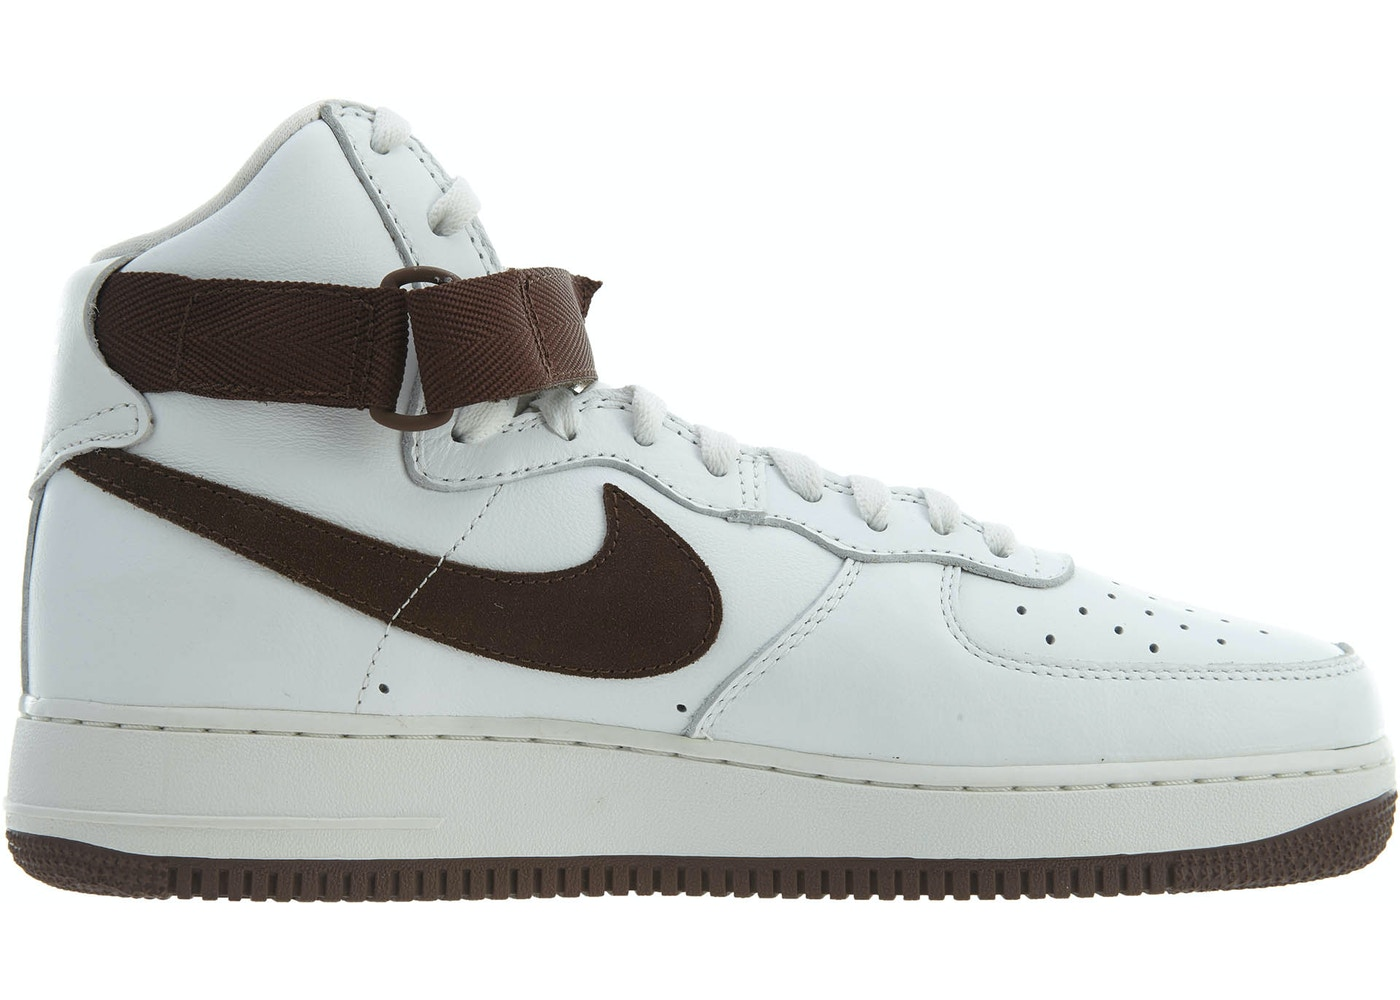 Nike Air Force Shoes - Lowest Ask 87385764f8